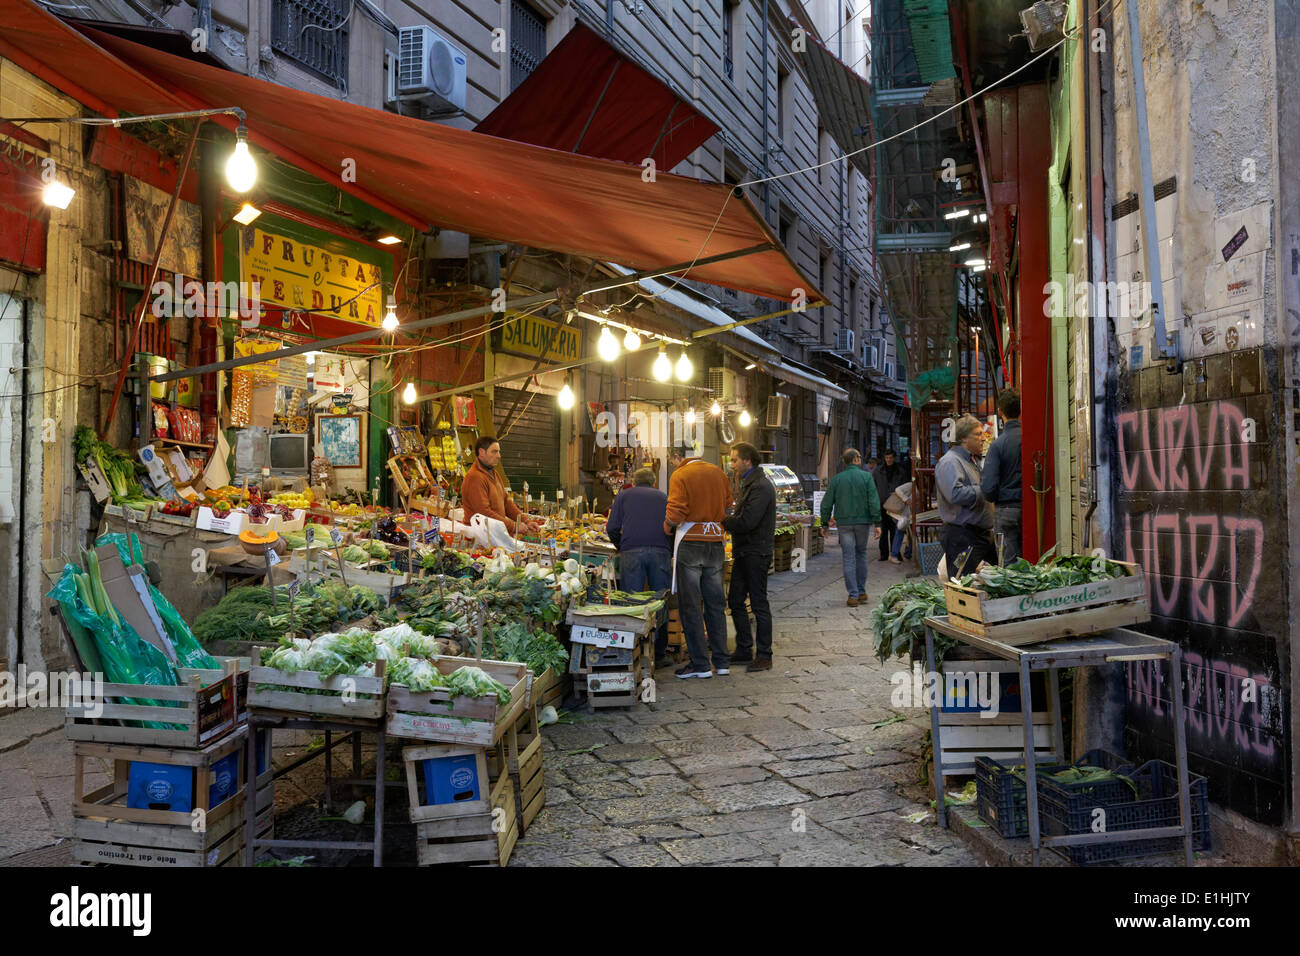 Alleyway with market stalls, the oldest market in the historical centre, Mercato della Vucciria, Palermo, Sicily, Italy - Stock Image